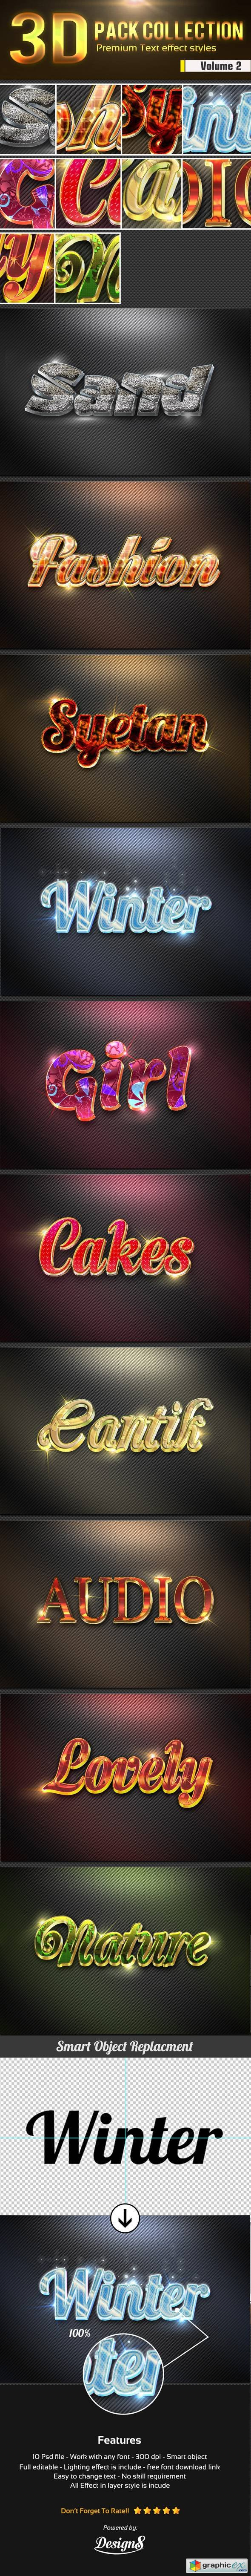 New 3D Photoshop Text Effect Style Vol 2